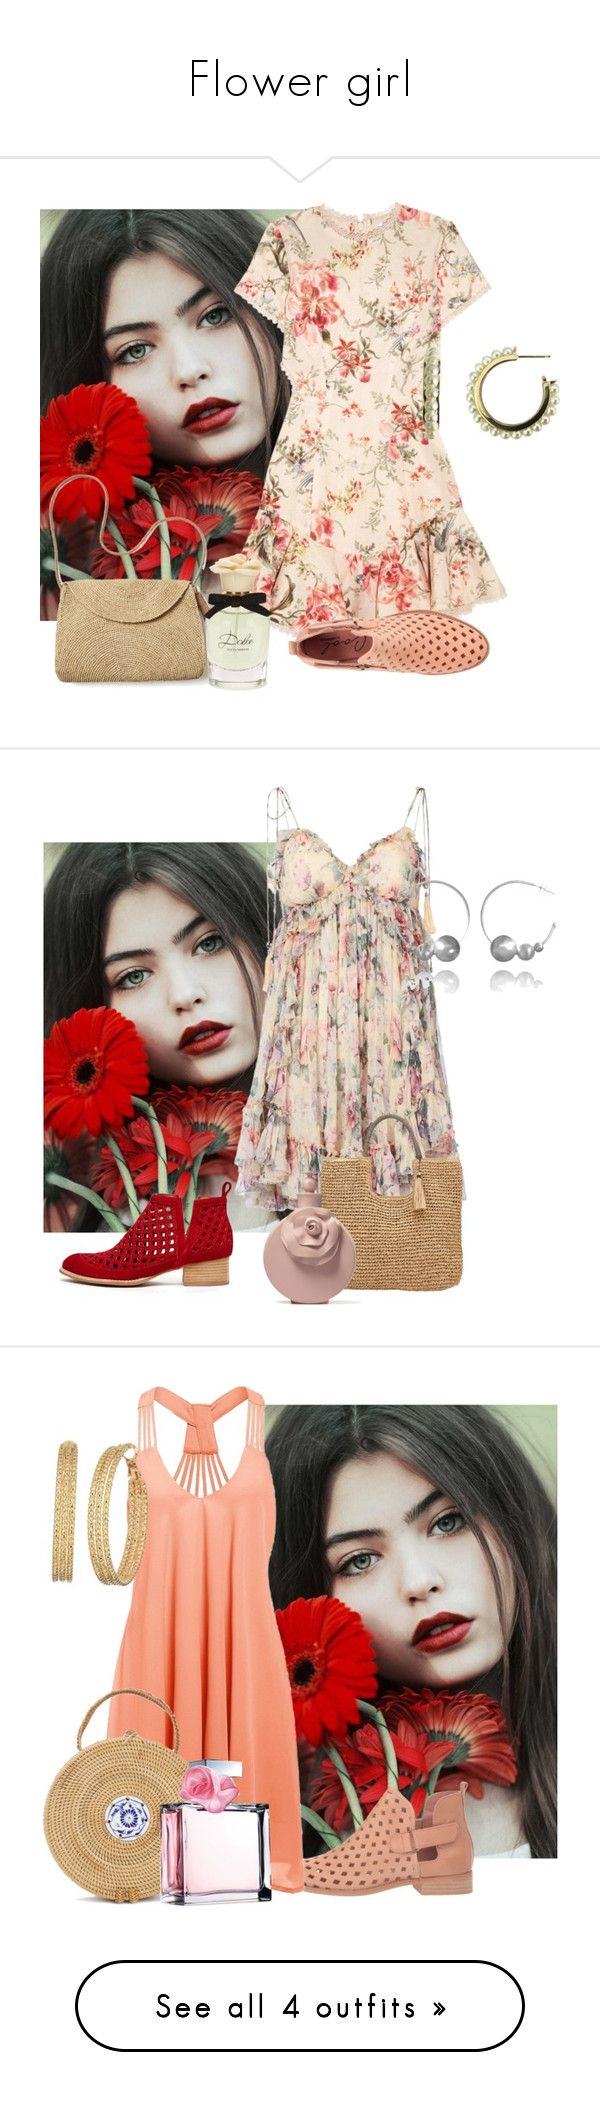 """""""Flower girl"""" by sofiacalo ❤ liked on Polyvore featuring Zimmermann, Coolway, Mar y Sol, Dolce&Gabbana, Jeffrey Campbell, John Lewis, GUESS, Ralph Lauren, 10 Crosby Derek Lam and Marc Jacobs"""